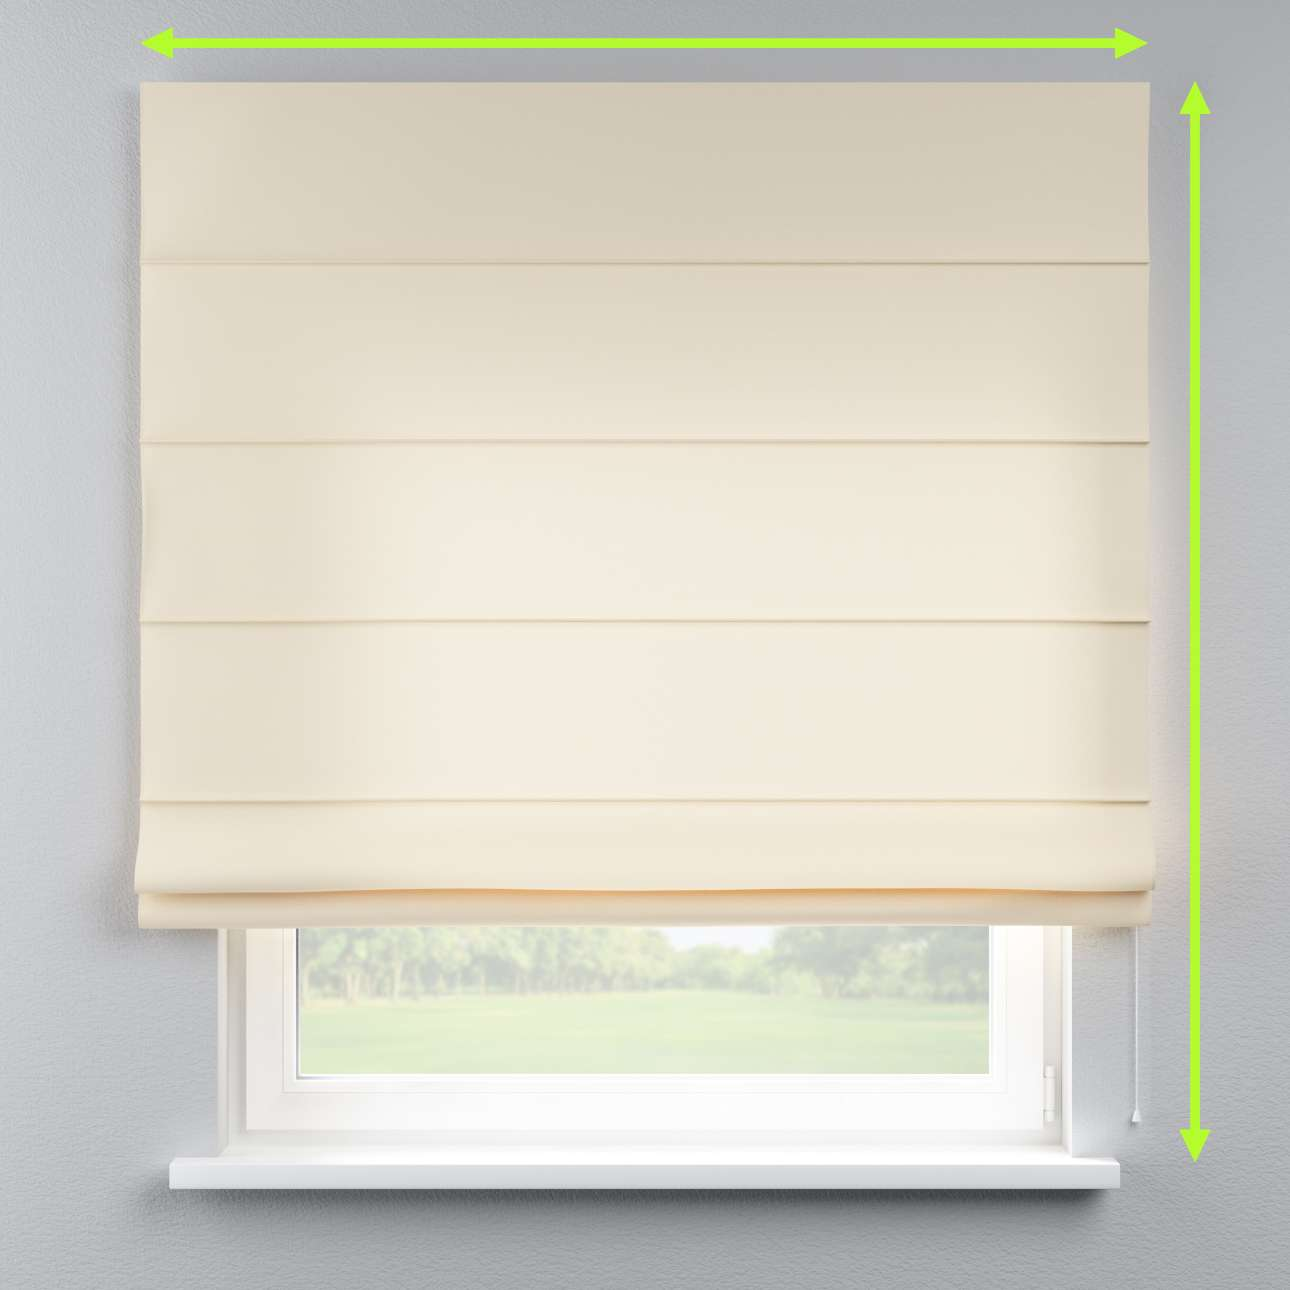 Capri roman blind in collection Cotton Panama, fabric: 702-29